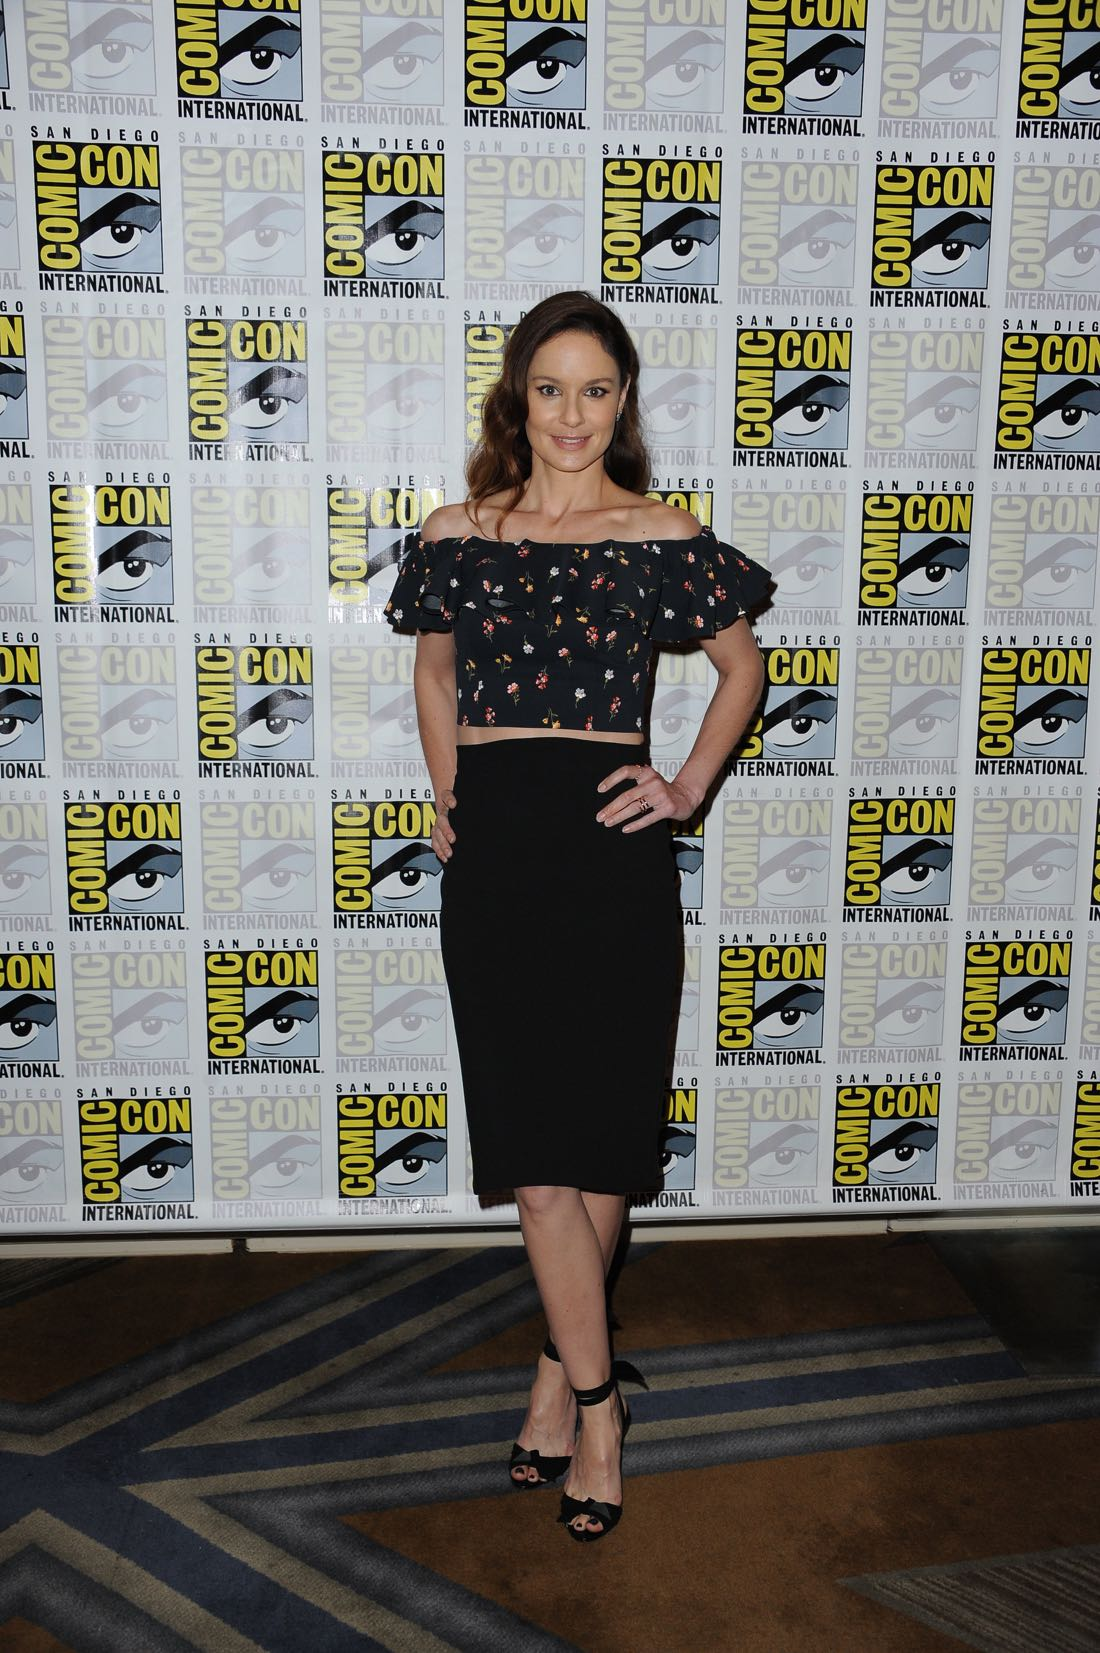 FOX FANFARE AT SAN DIEGO COMIC-CON © 2016: PRISON BREAK cast member Sarah Wayne Callies during the PRISON BREAK press room on Sunday, July 24 at the FOX FANFARE AT SAN DIEGO COMIC-CON © 2016. CR: Scott Kirkland/FOX © 2016 FOX BROADCASTING